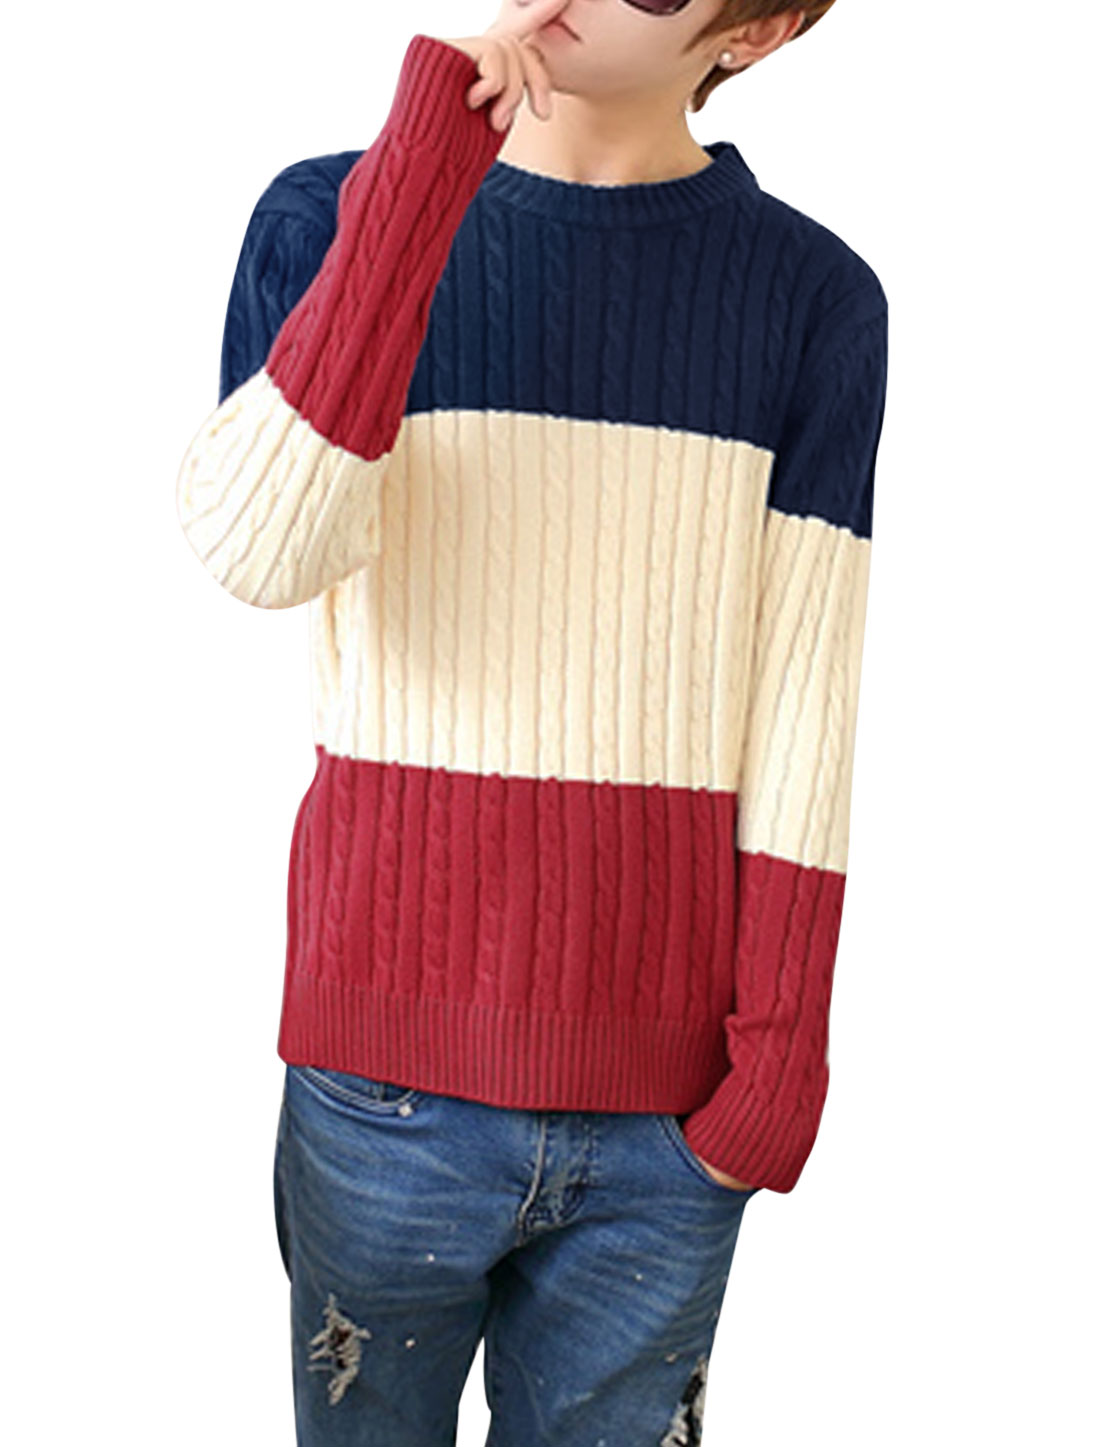 Men Cable Rib Knit Design Colorblock Long Sleeves Sweater Navy Blue Burgundy S